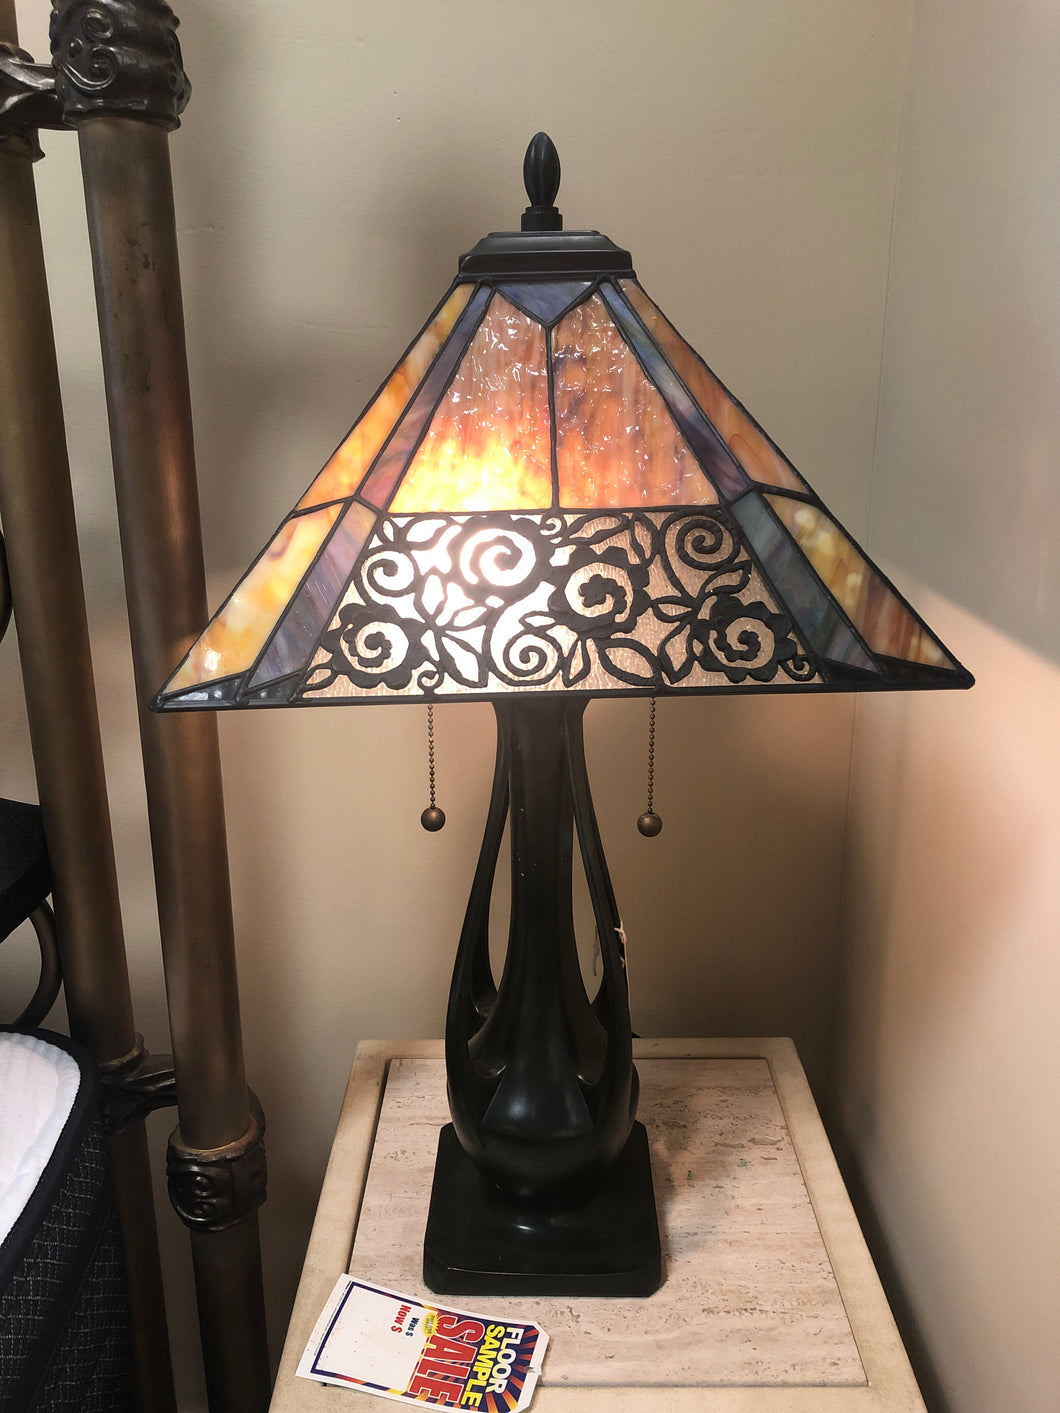 Quoizel Scroll Shade Lamp - Ensley Fairfield Mattress Co.